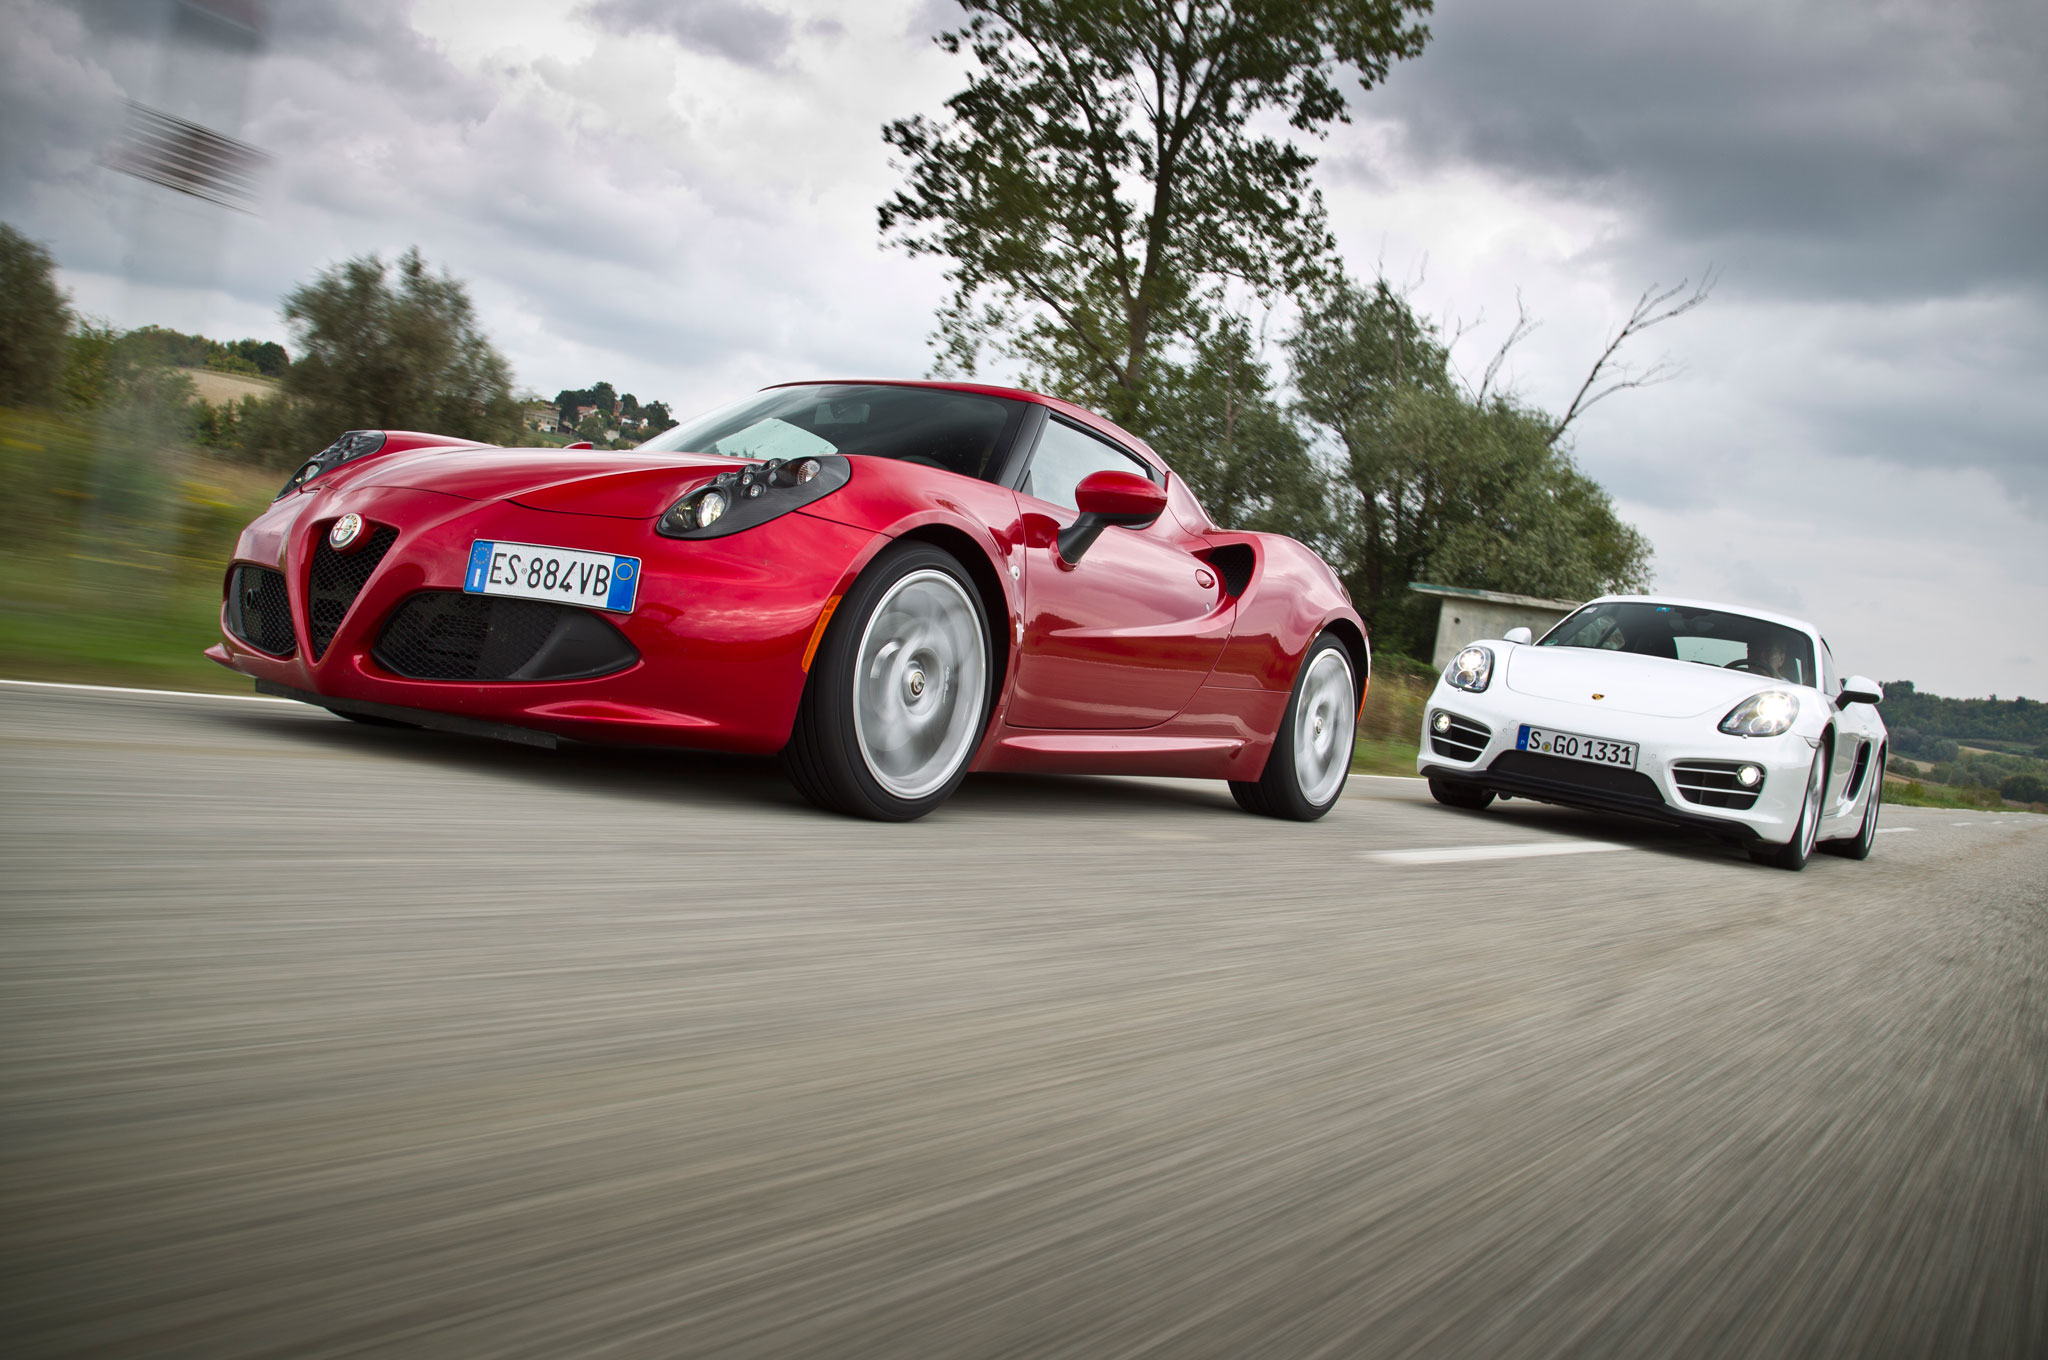 2014 Alfa Romeo 4C Vs 2014 Porsche Cayman Front Left View1